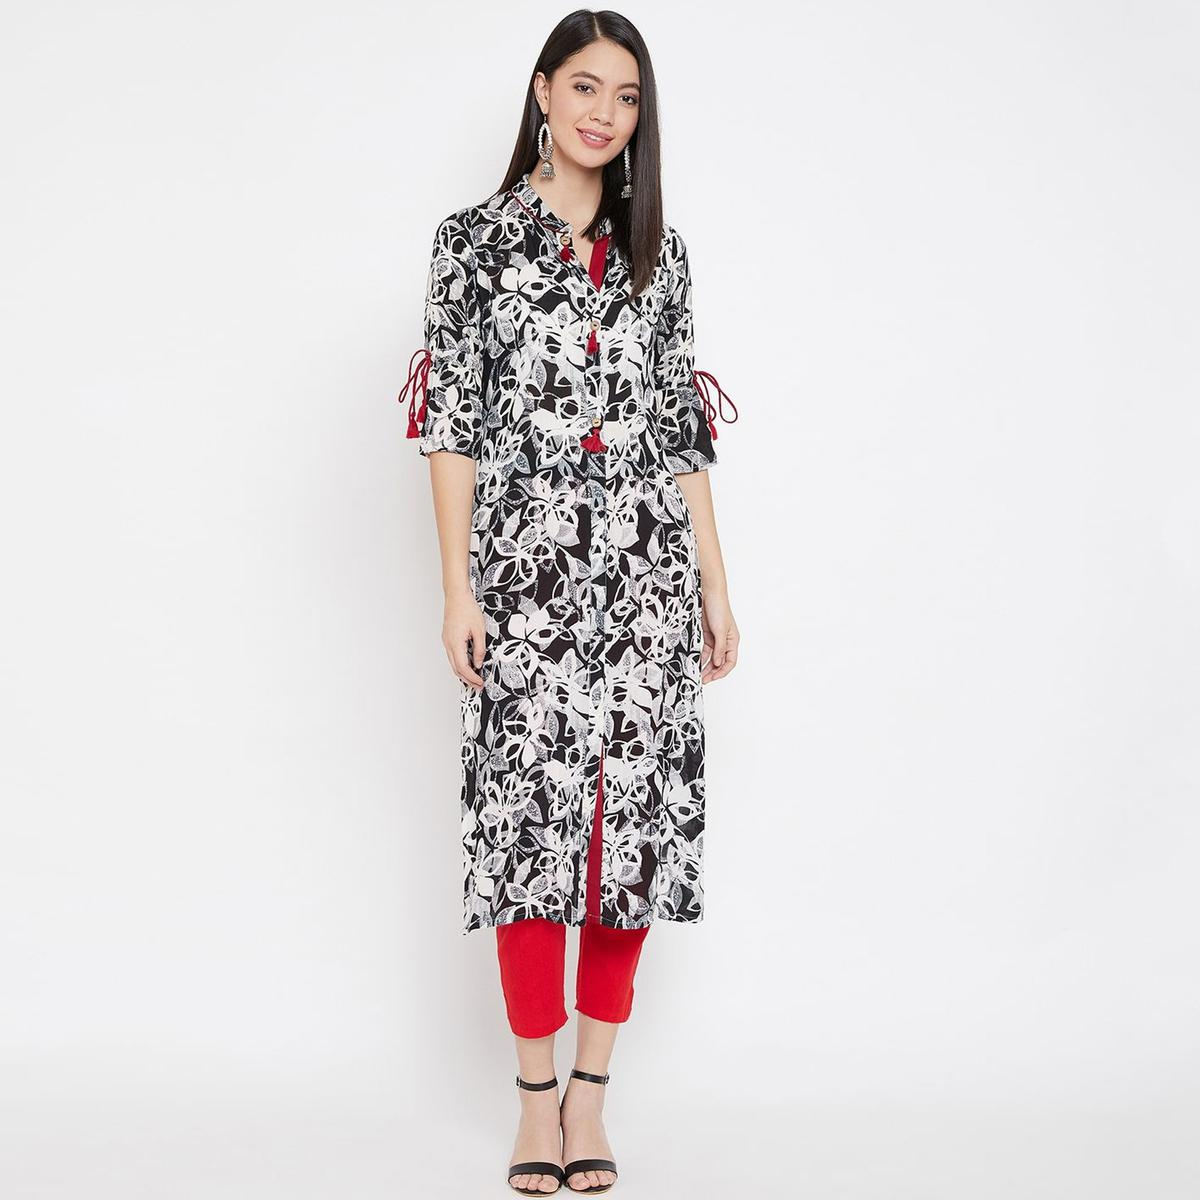 WineRed - Black Colored Casual Wear Floral Printed Straight Calf Length Rayon Kurti